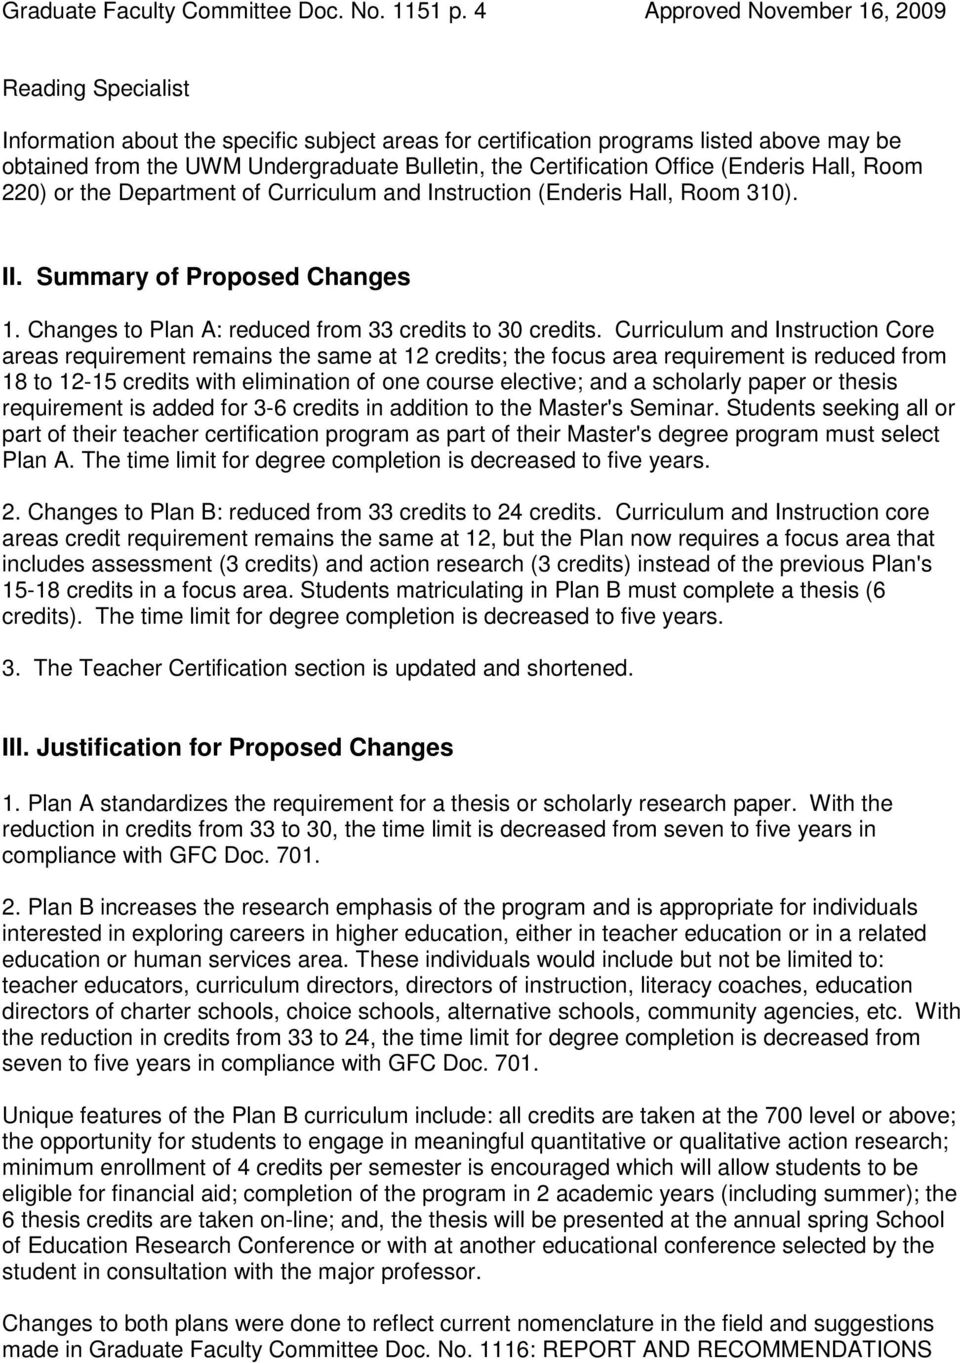 Certification Office (Enderis Hall, Room 220) or the Department of Curriculum and Instruction (Enderis Hall, Room 310). II. Summary of Proposed Changes 1.